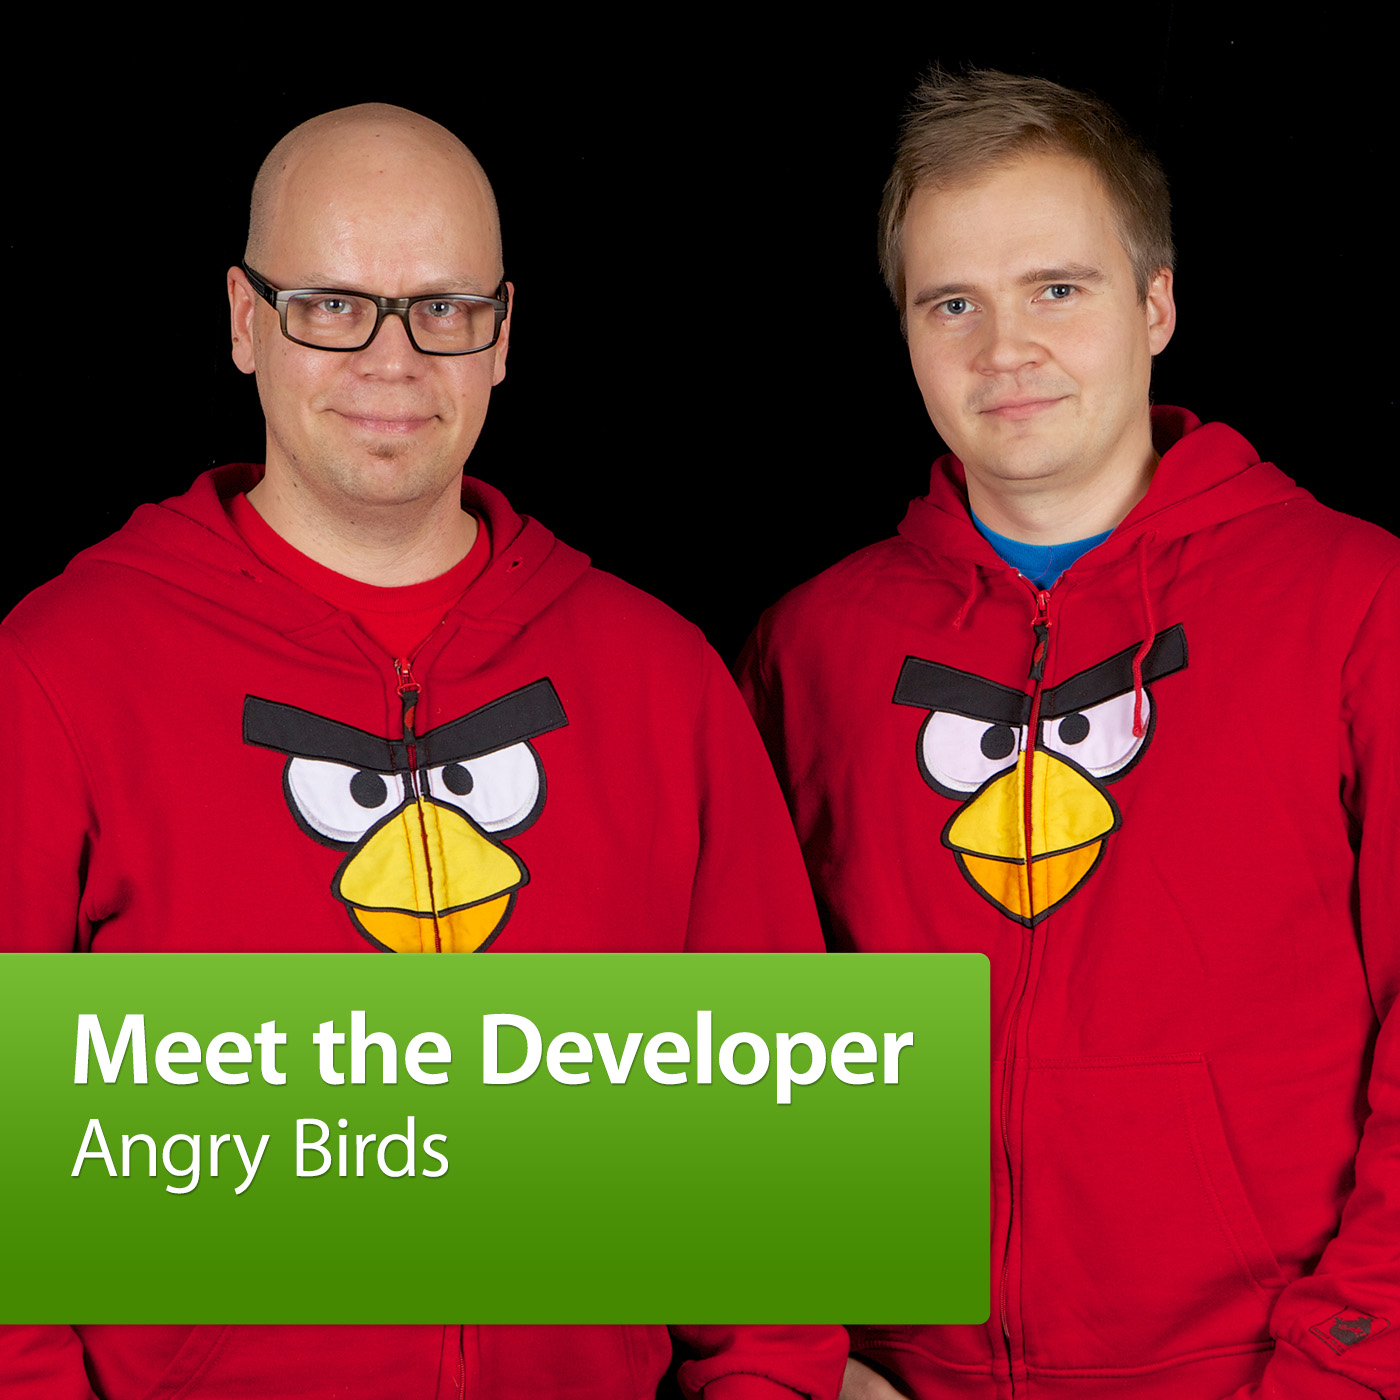 Angry Birds: Meet the Developer